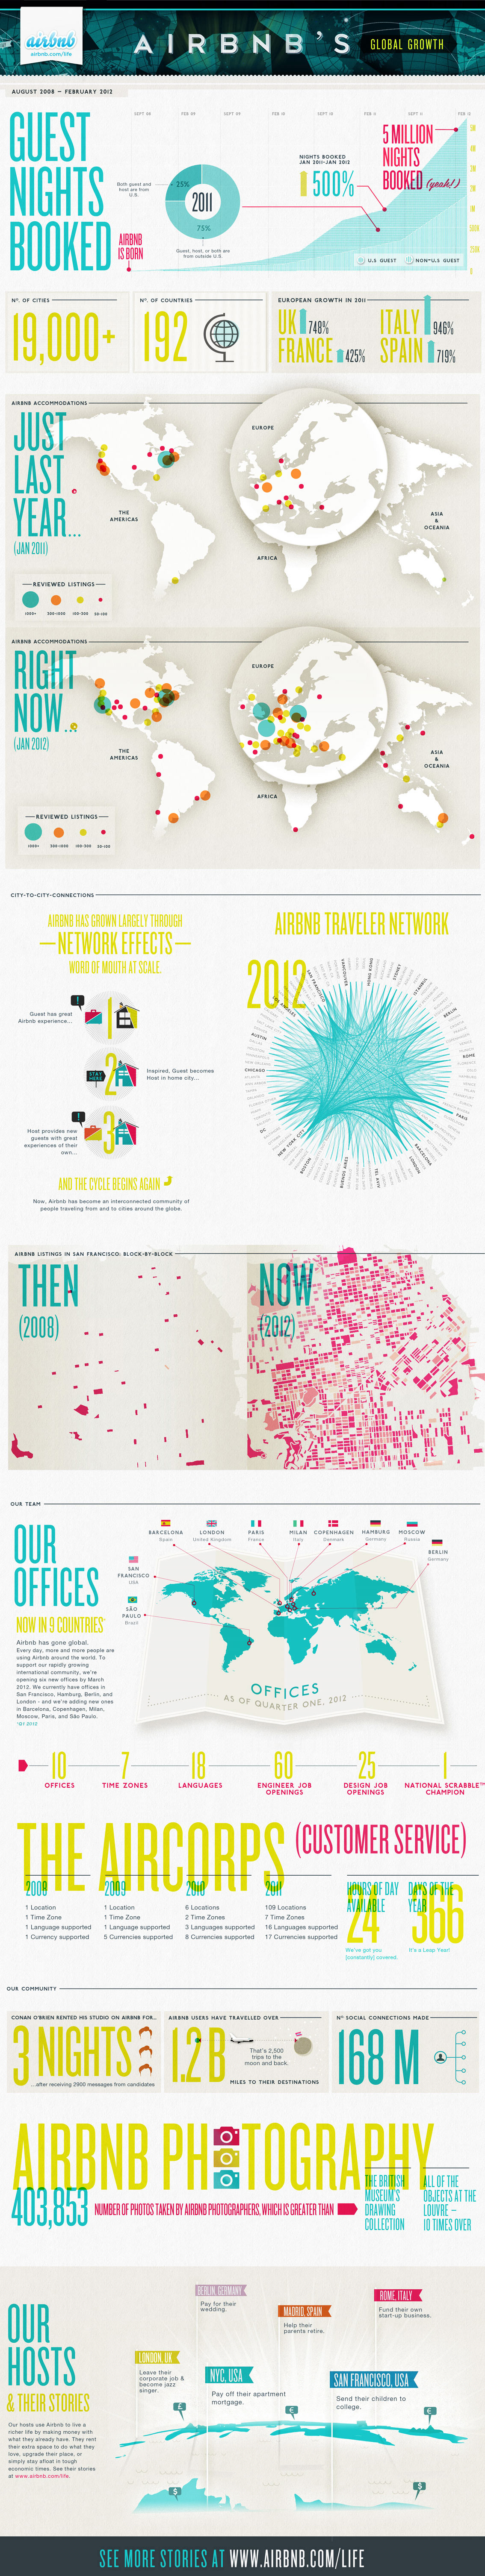 AirBnB Global Growth - Travel Infographic